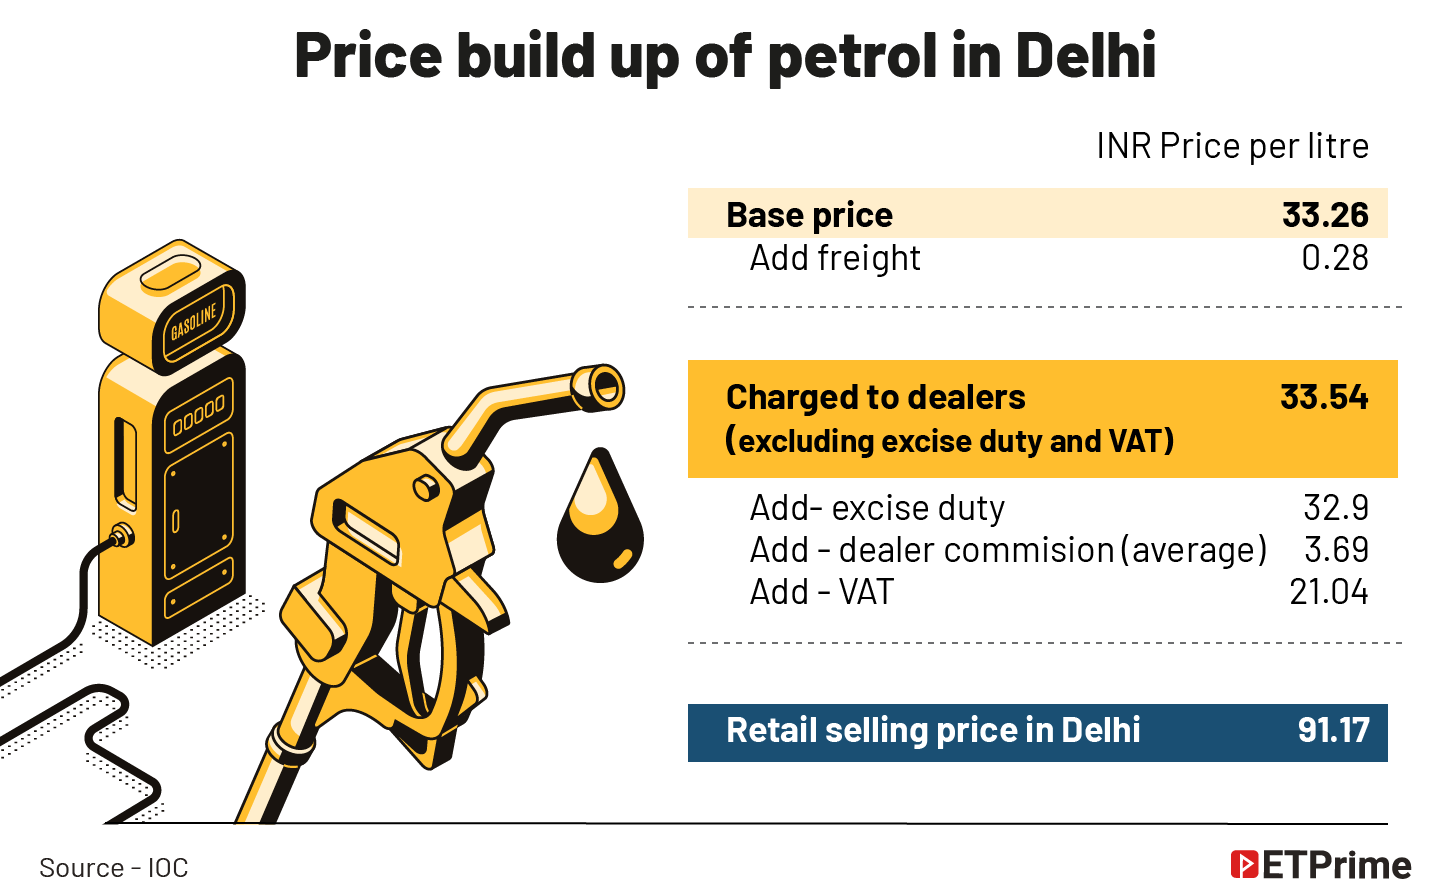 Price build up of petrol in Delhi @2x